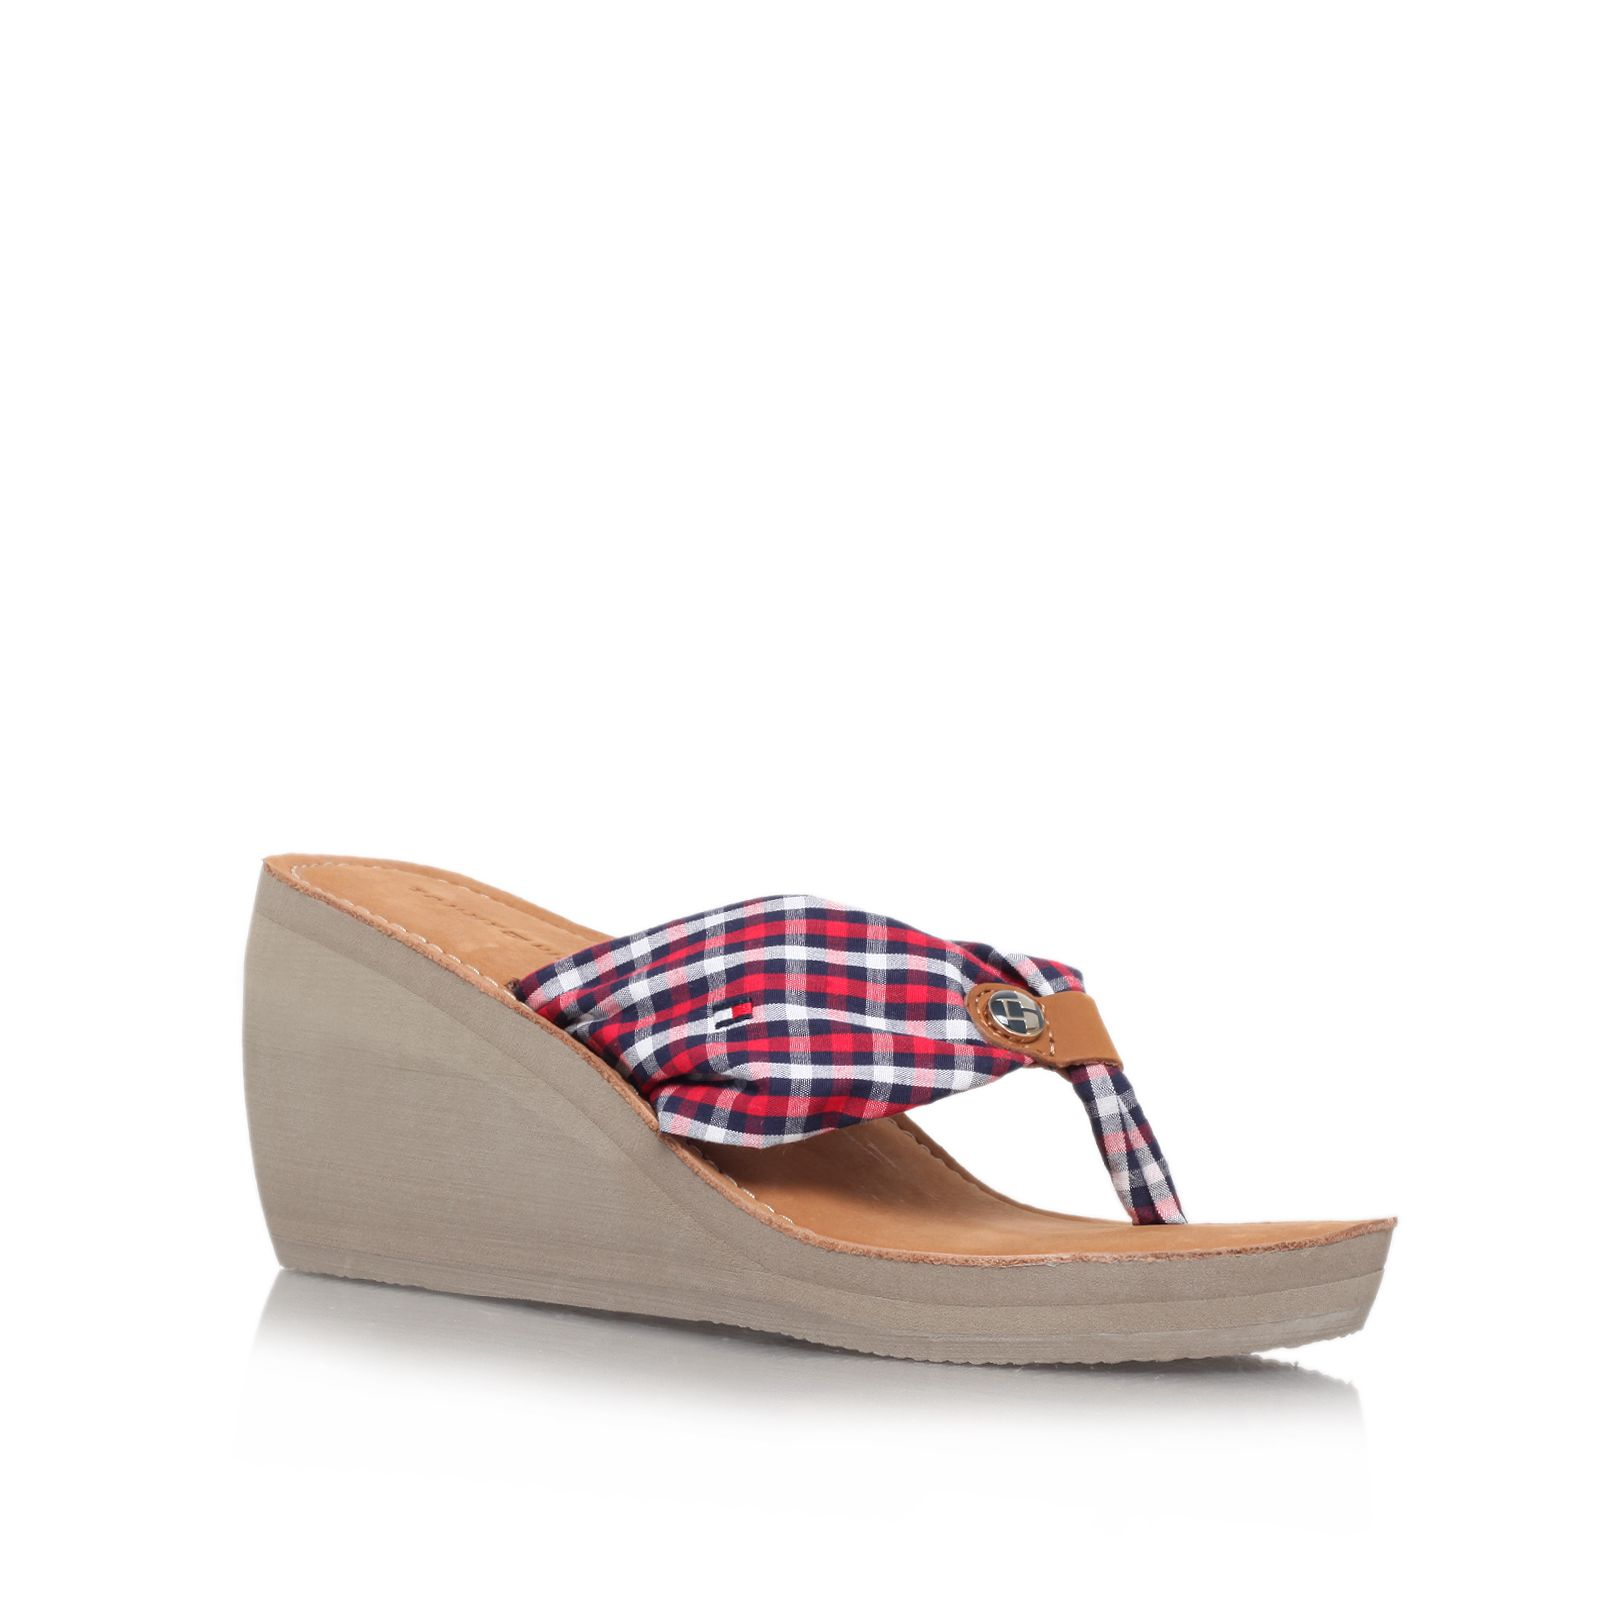 Myriam 9c wedge sandals